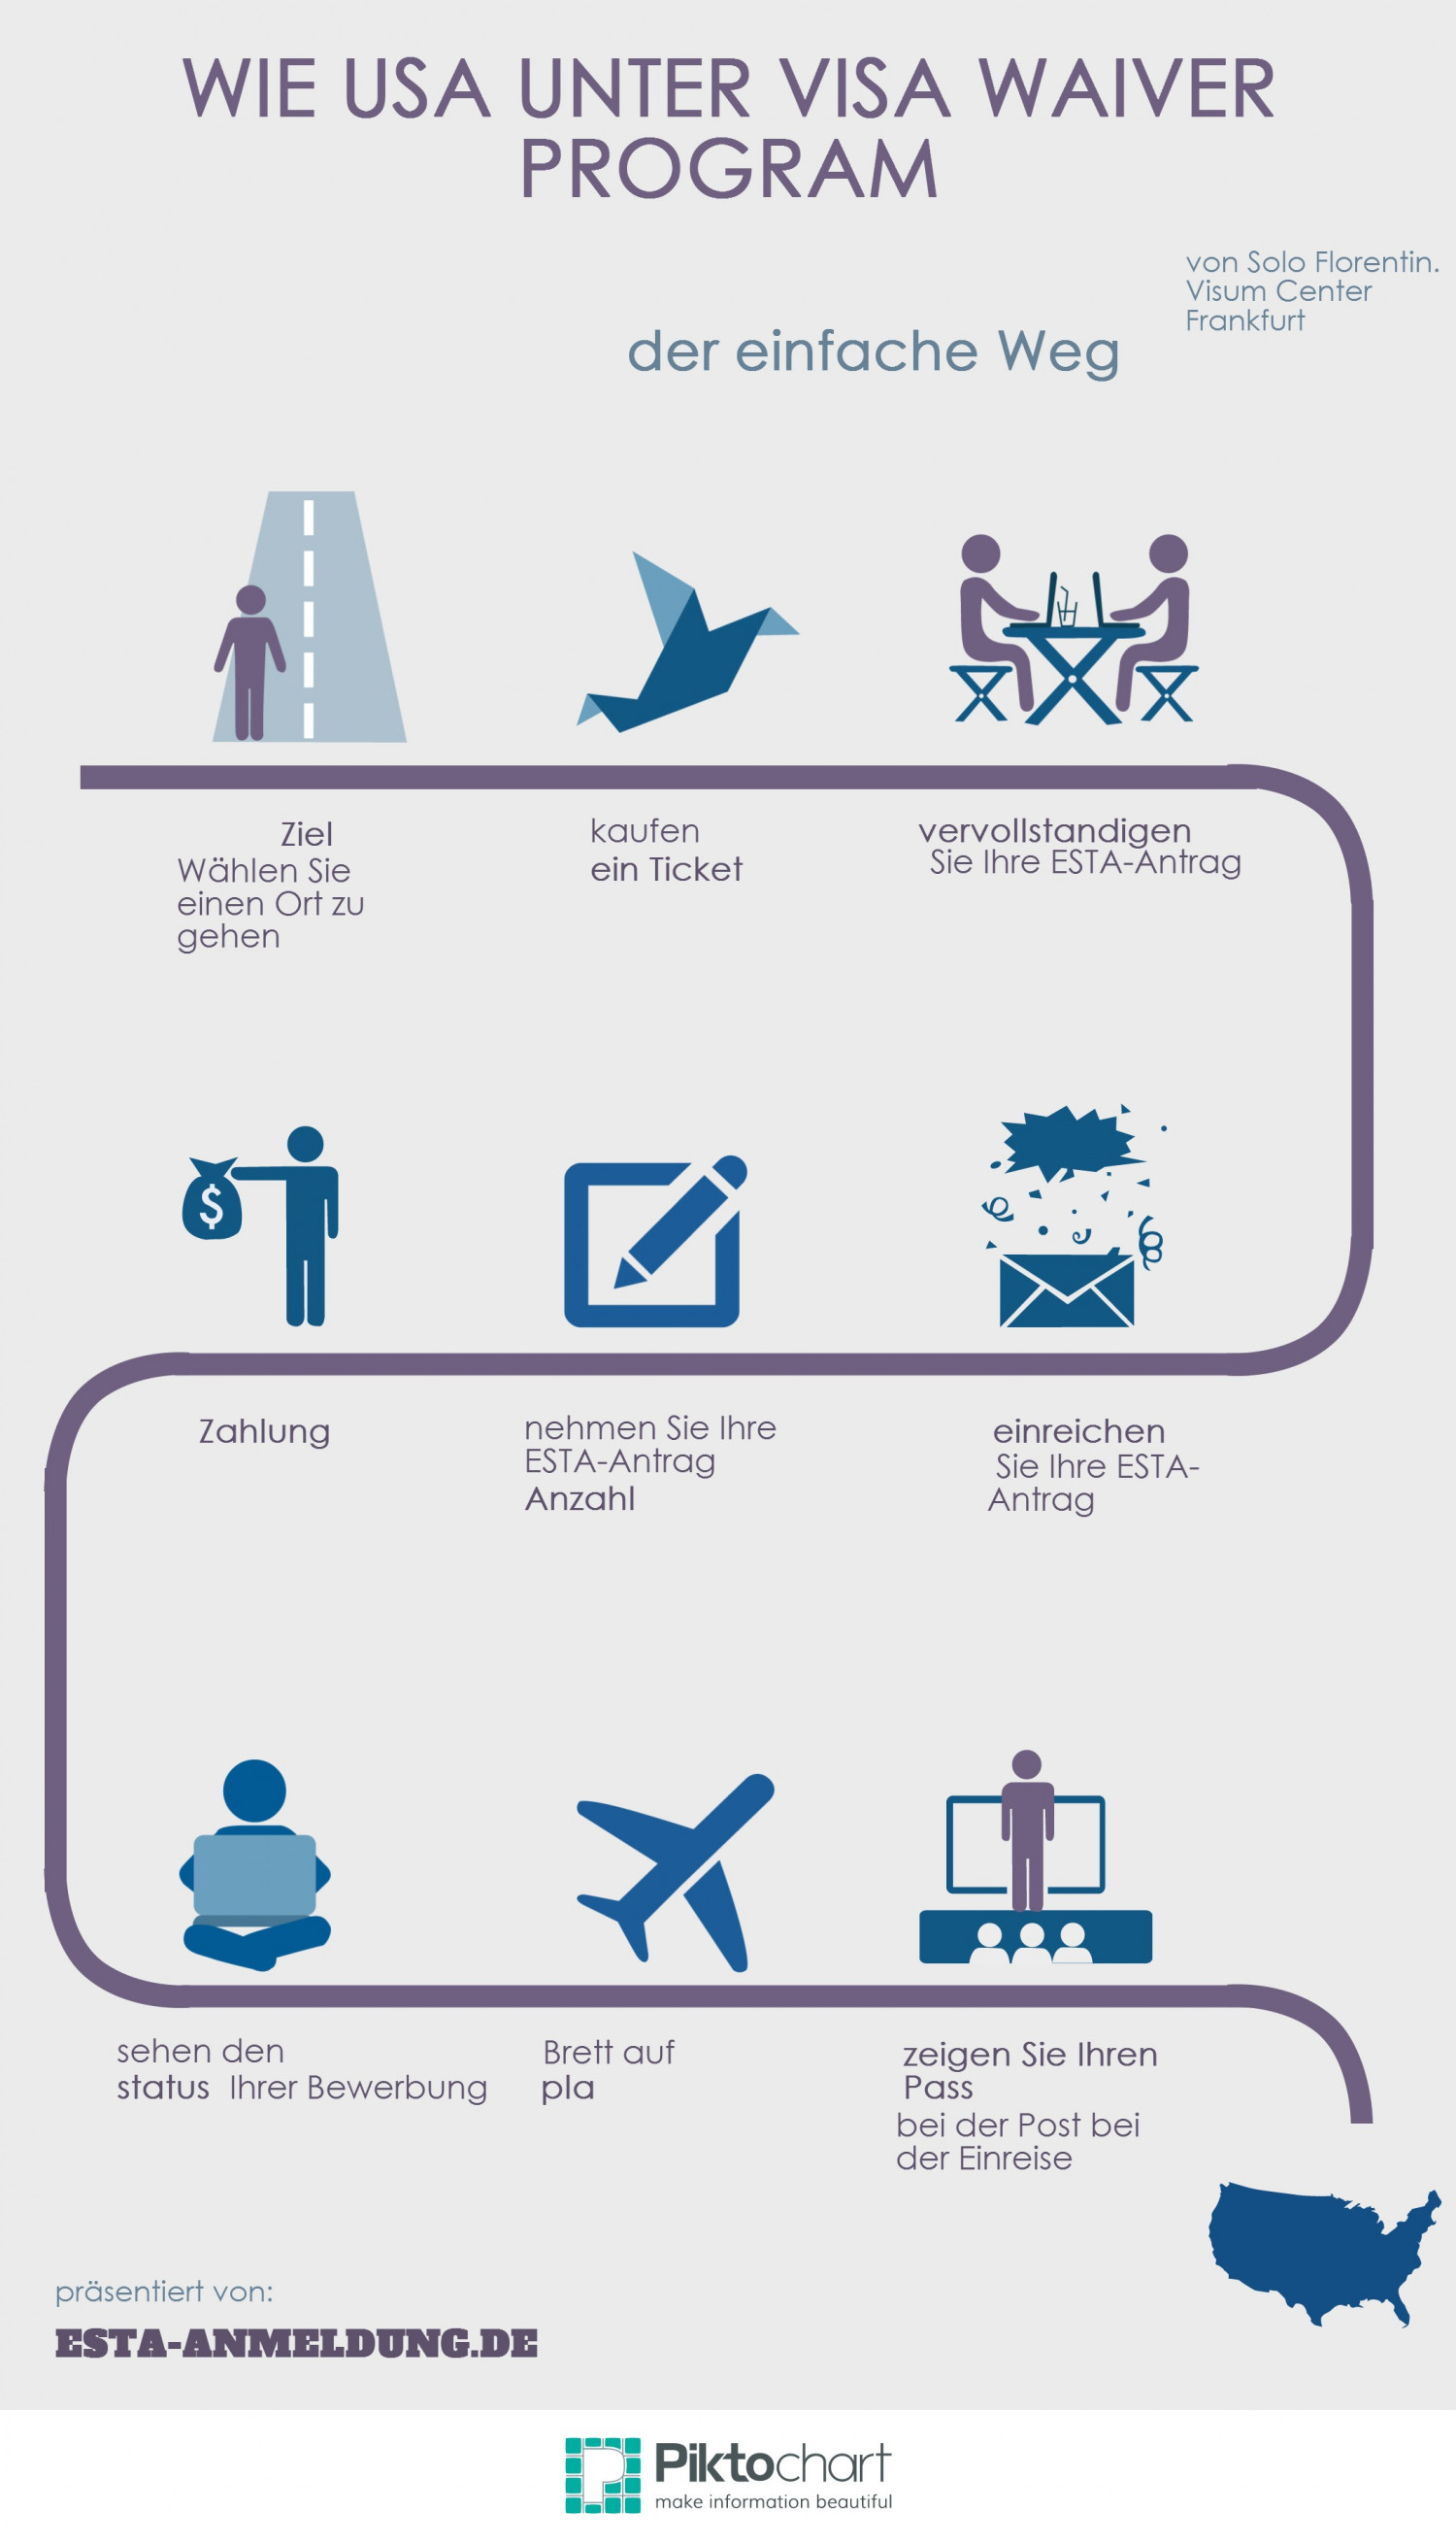 Wie USA Unter Visa Waiver Program Infographic